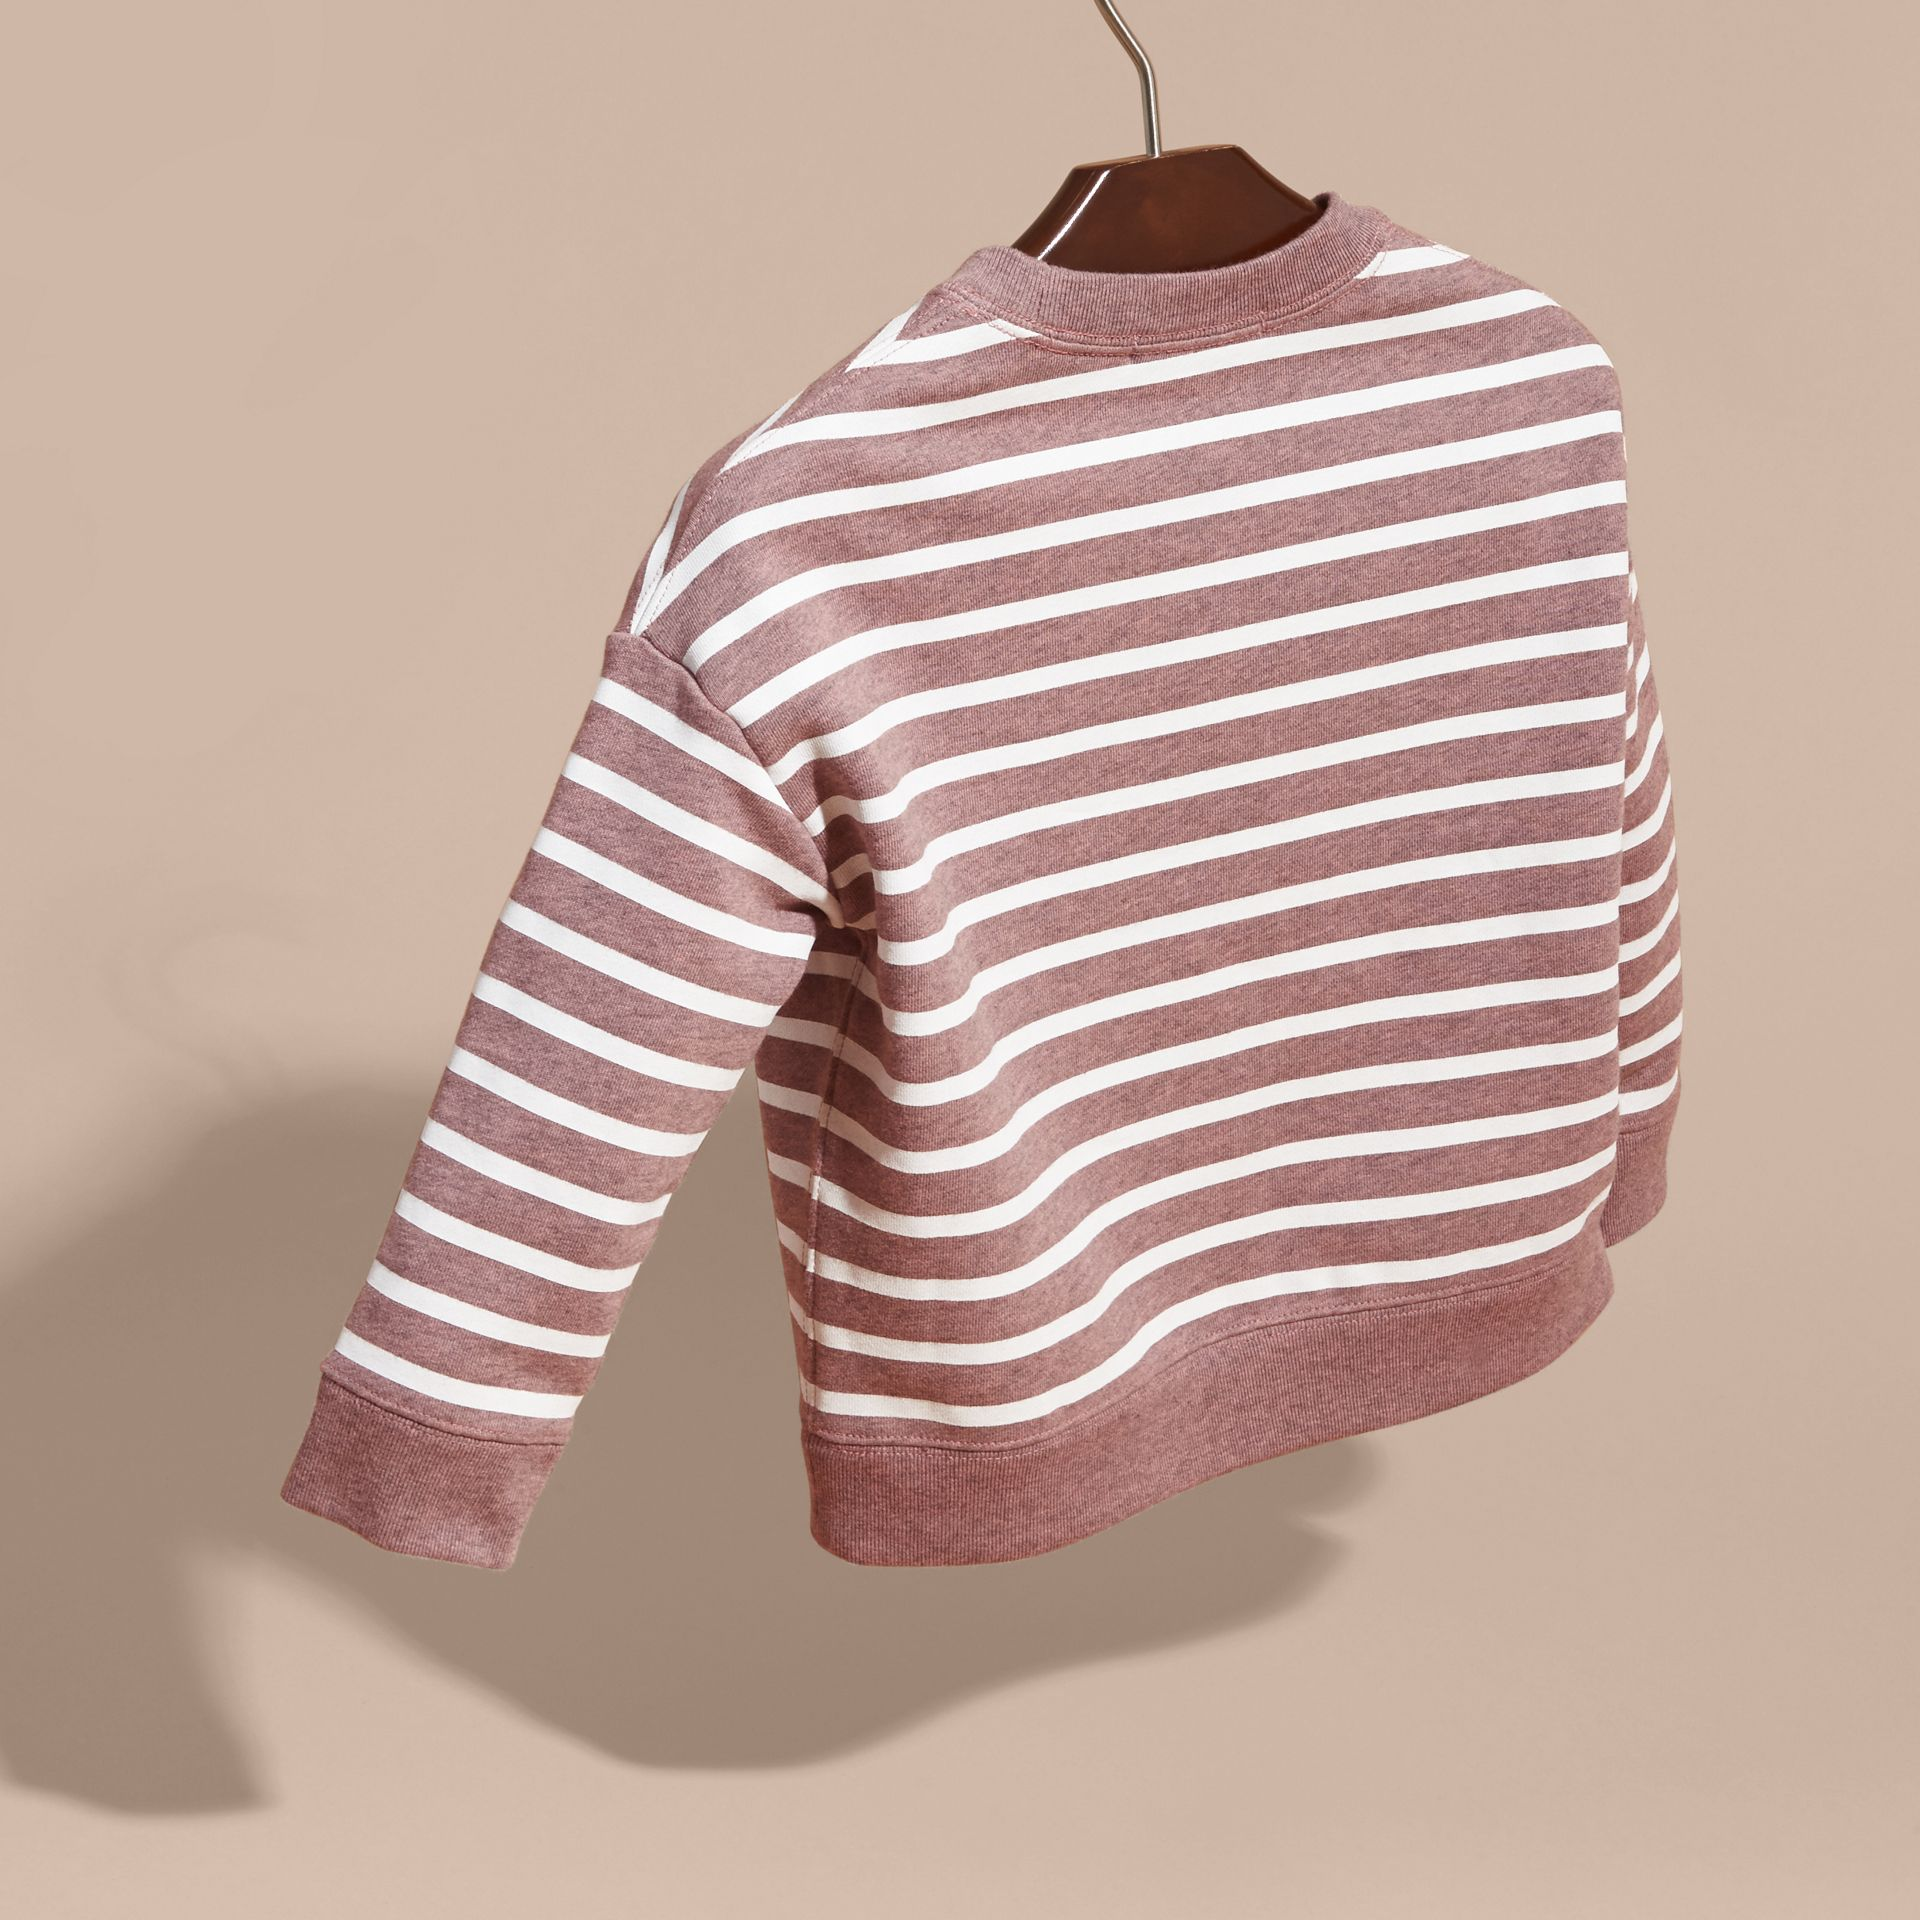 Striped Cotton Sweatshirt in Pink Azalea Melange - Girl | Burberry - gallery image 4